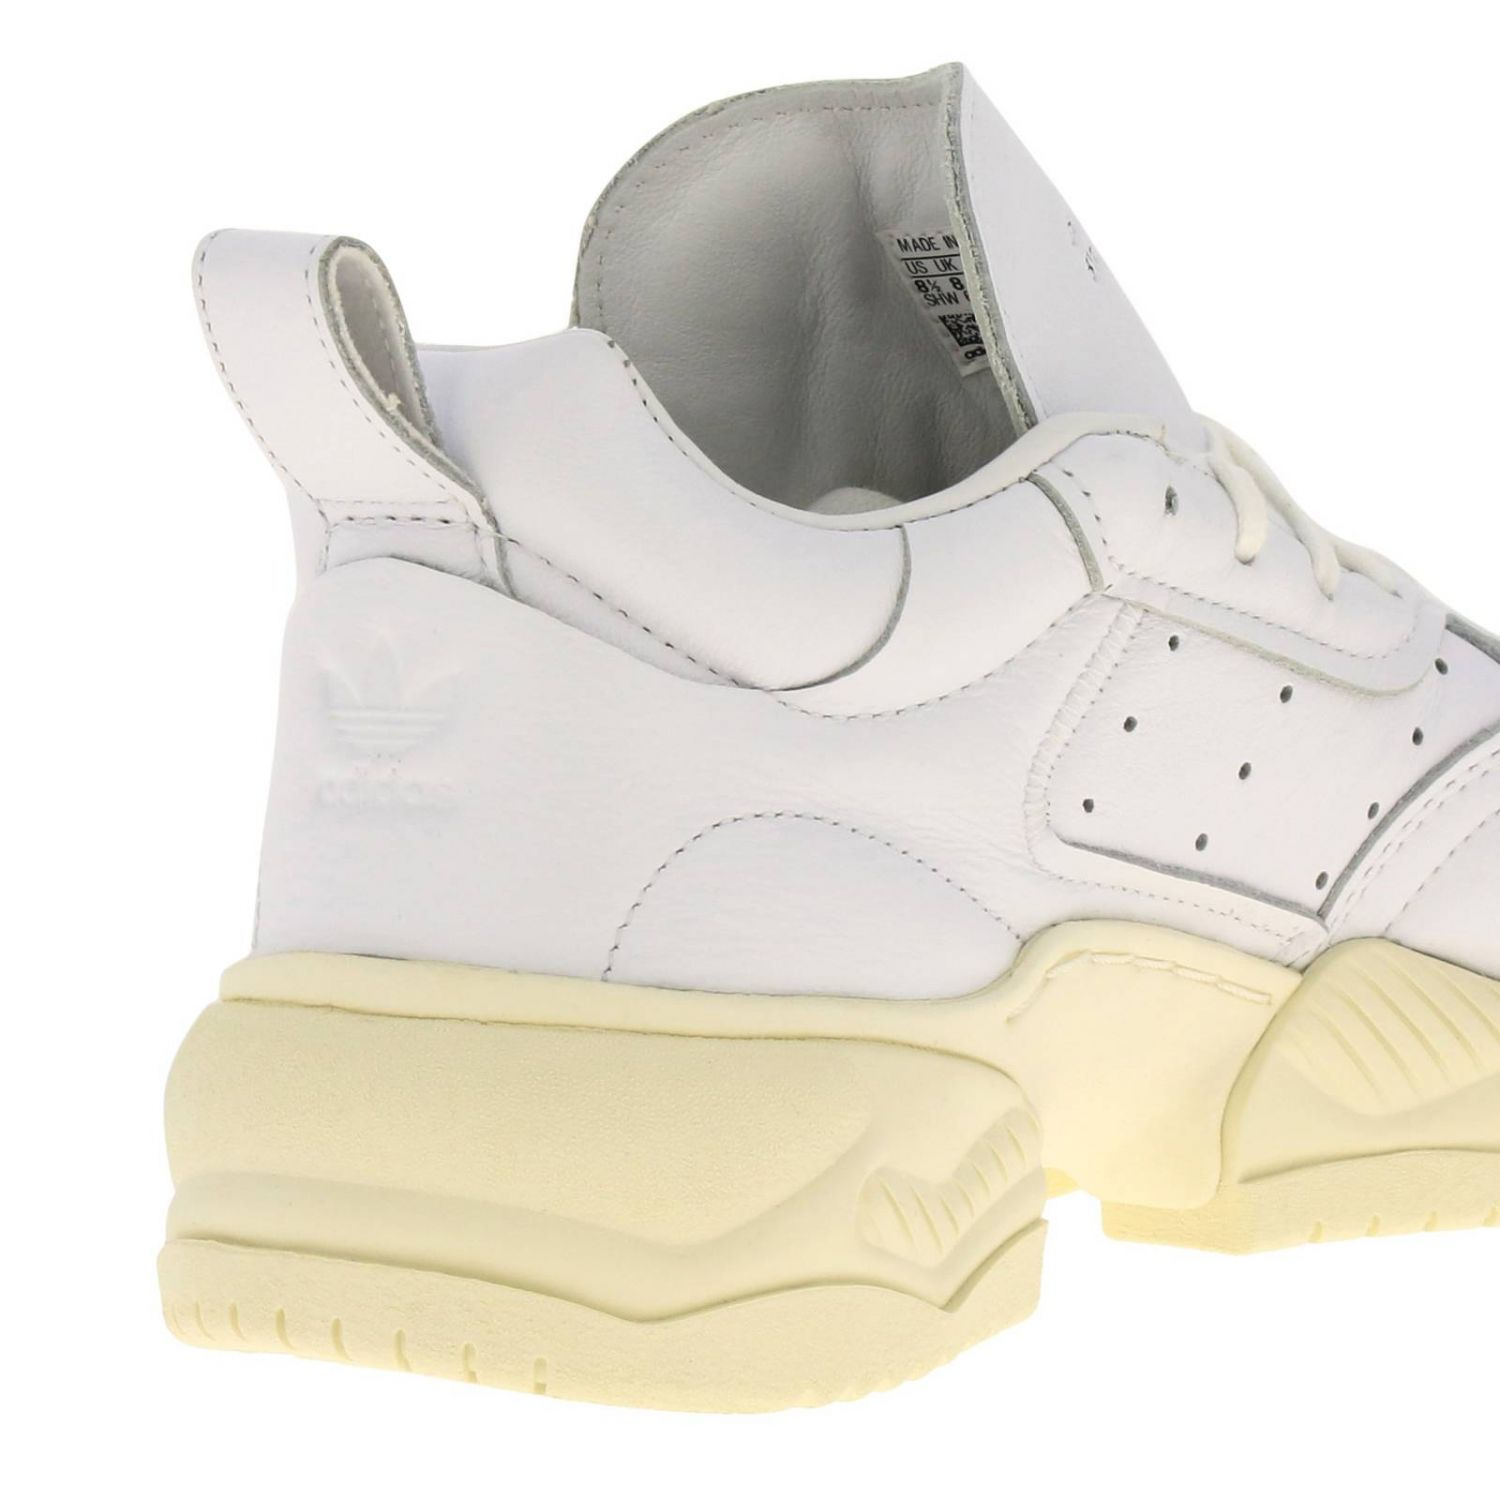 Sneakers Adidas Originals: Supercourt RX Adidas Originals sneakers in leather with holes and maxi sole white 4